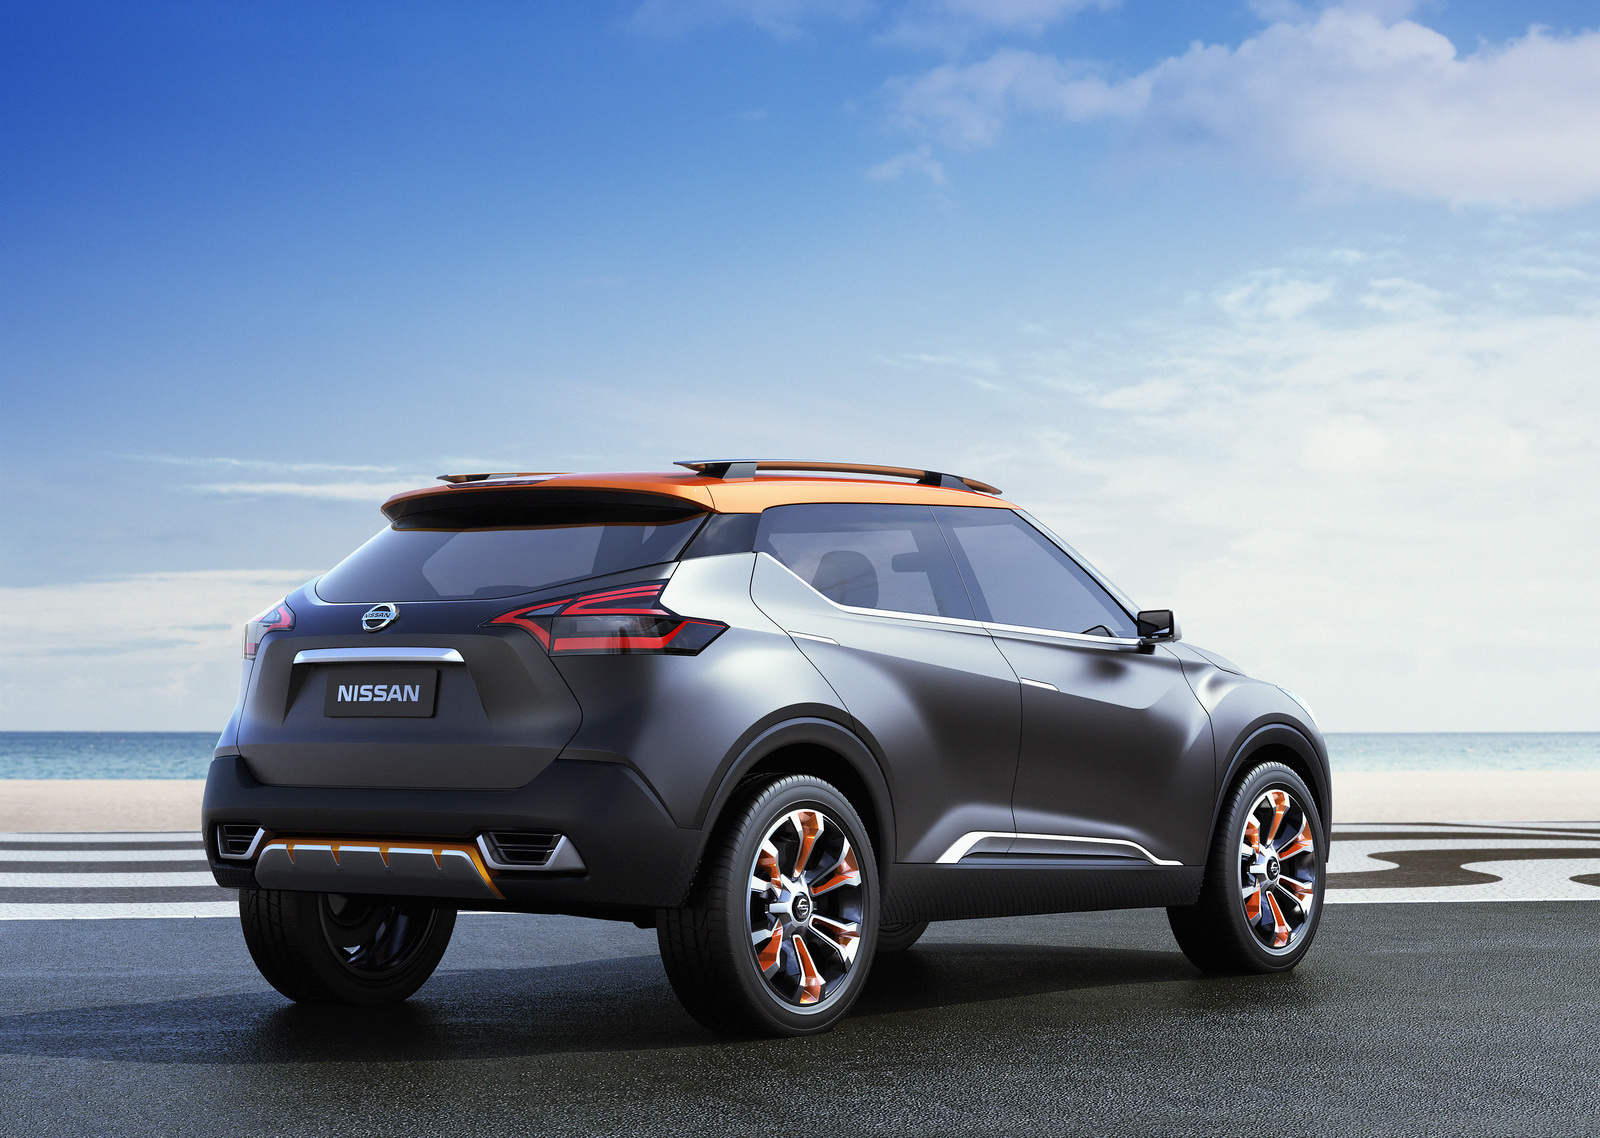 nissan kicks suv to debut in 2016 as the official car of the olympics in rio de janeiro